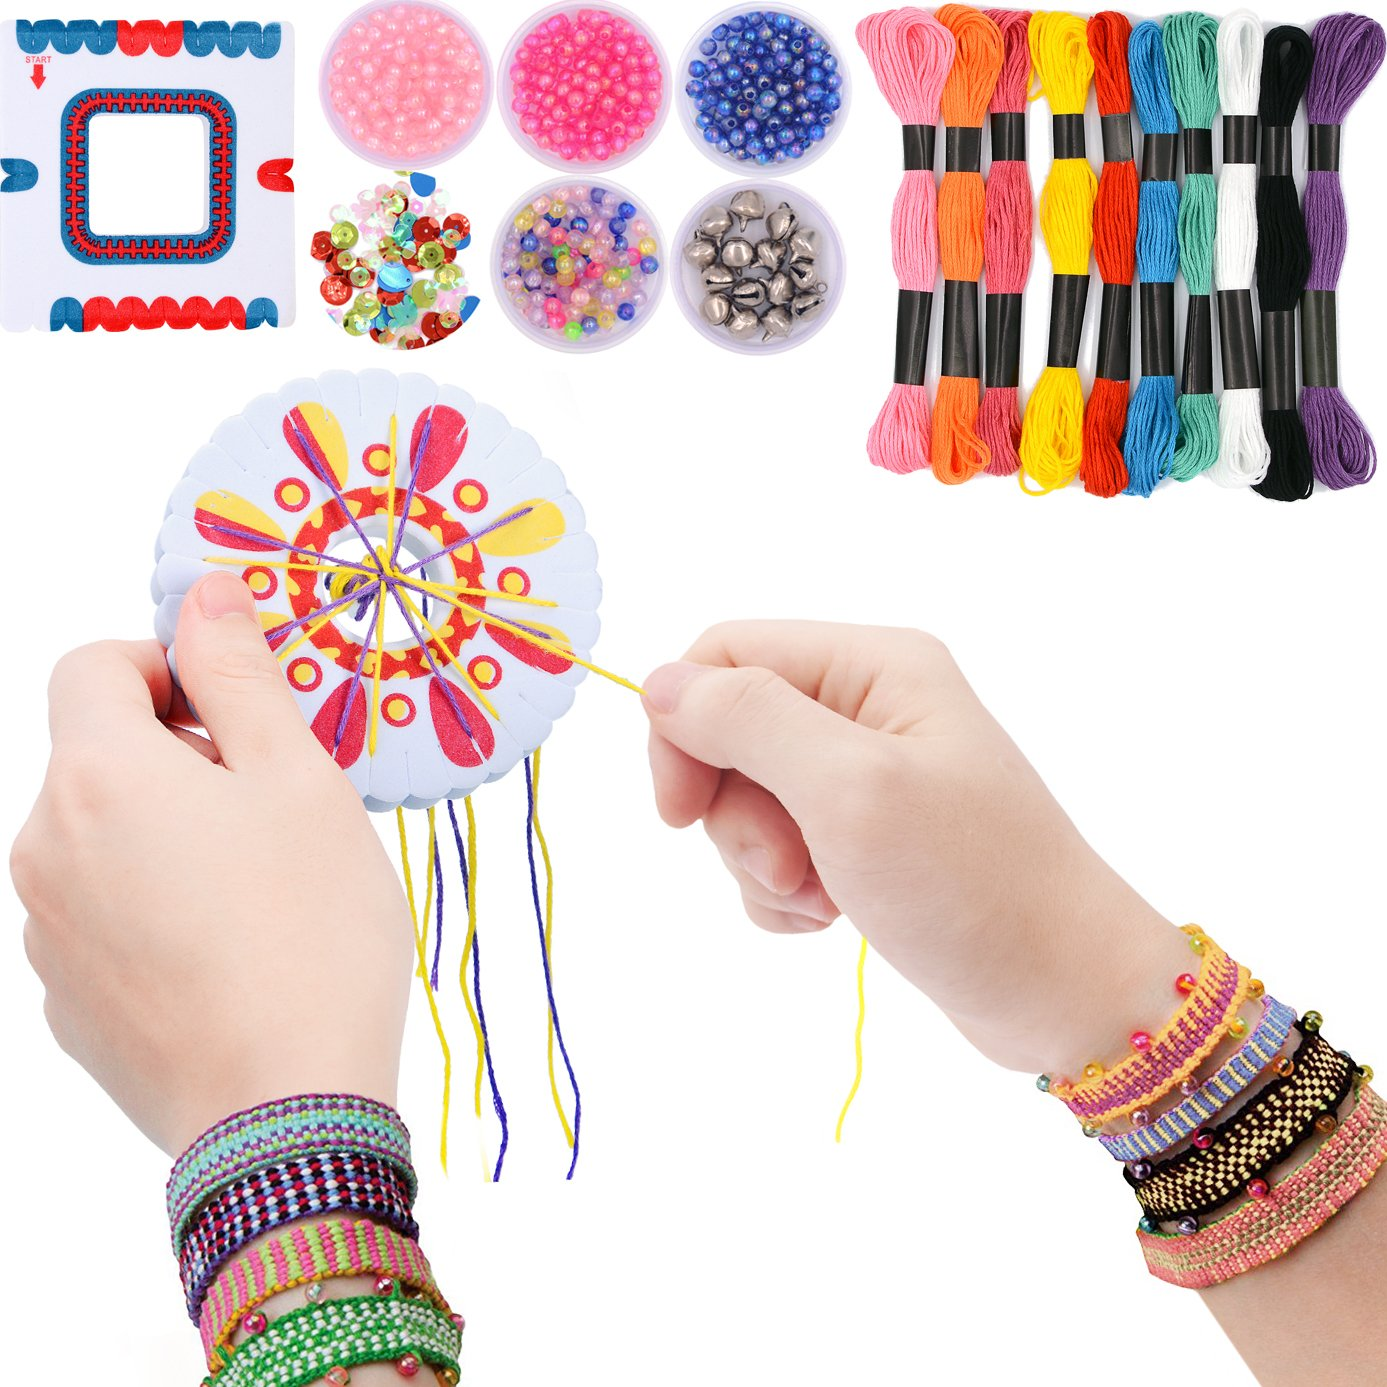 7TECH Premium Friendship Bracelet Maker 2 Packs Jewelry Kit (Deep Color)